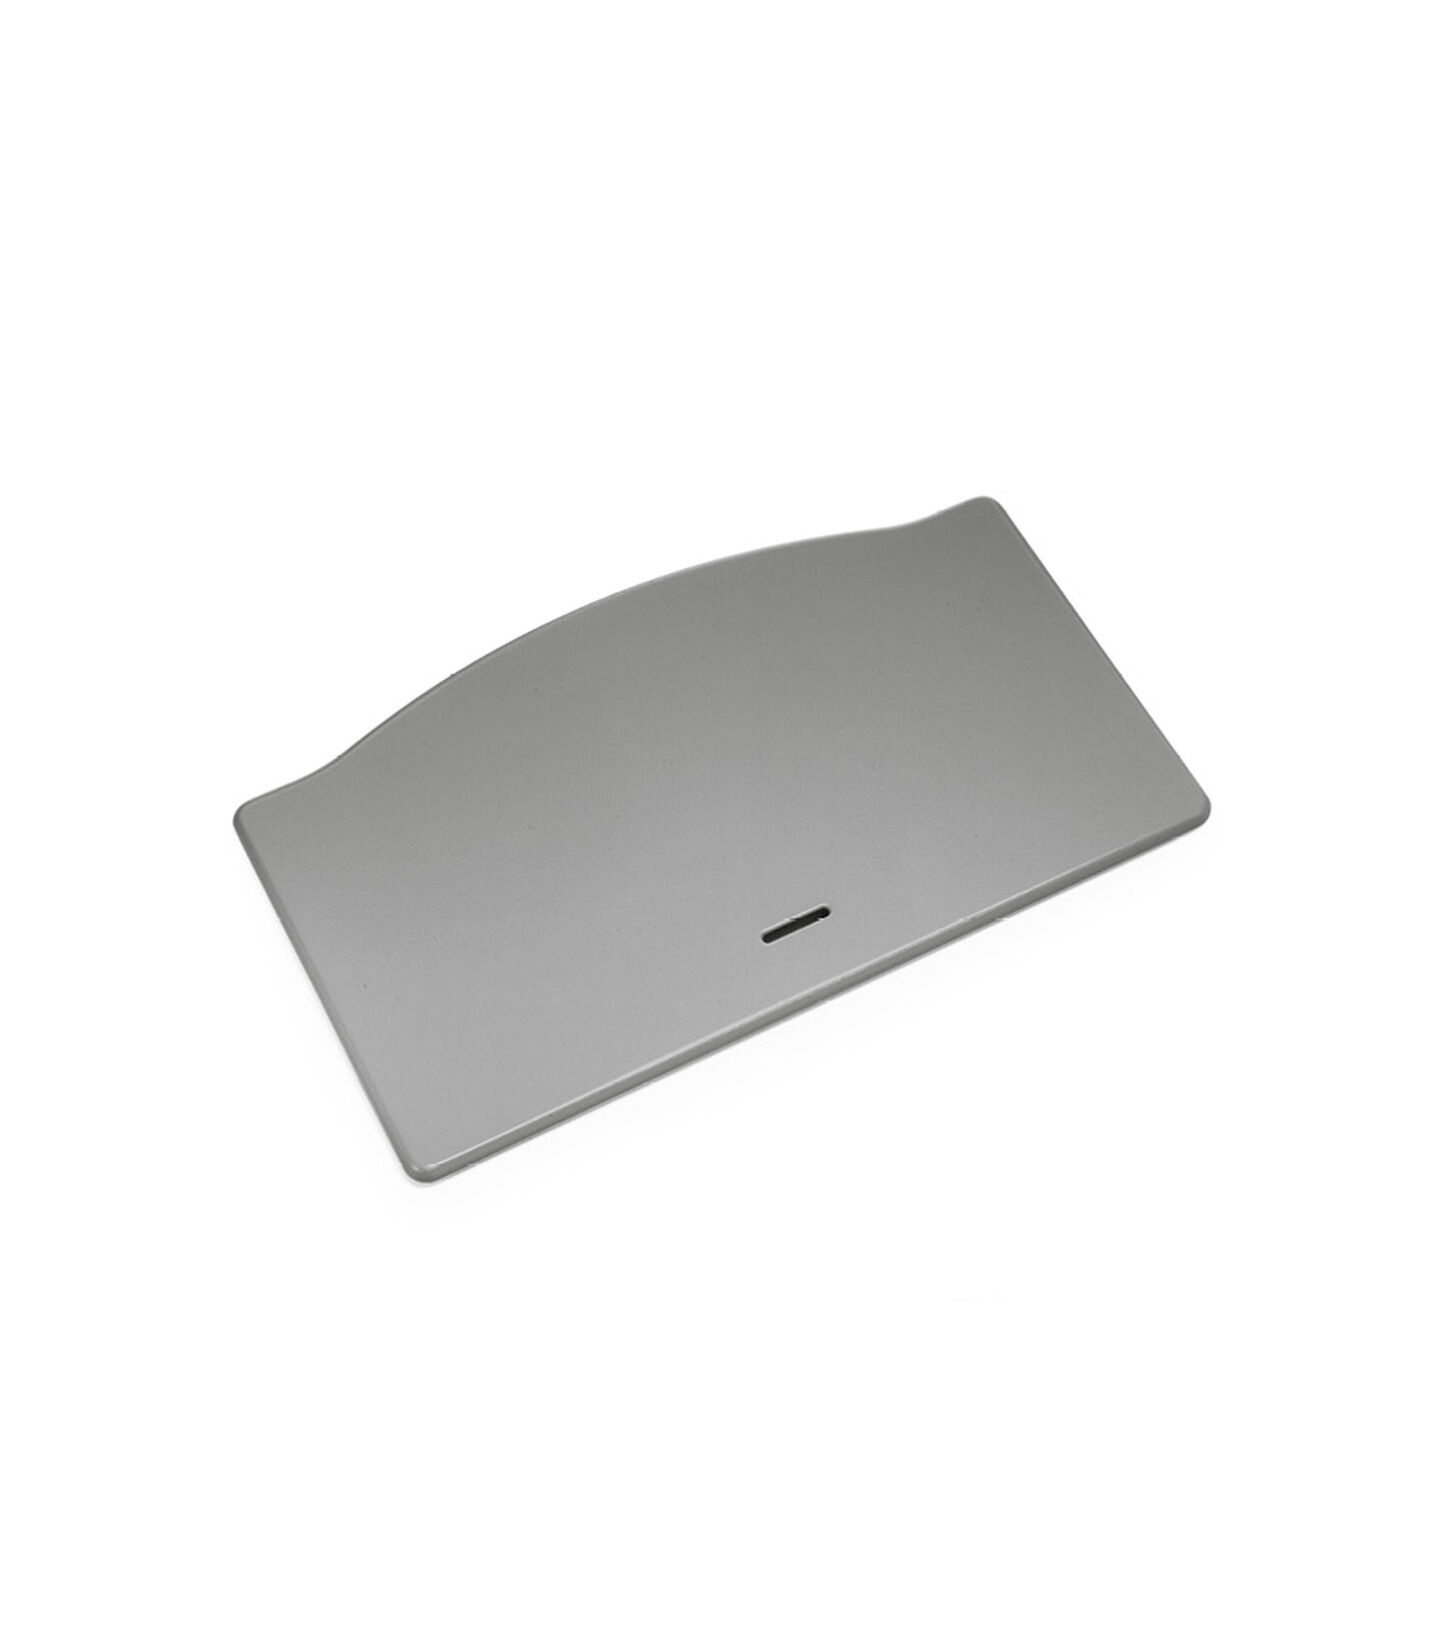 108828 Tripp Trapp Seat plate Storm grey (Spare part). view 1